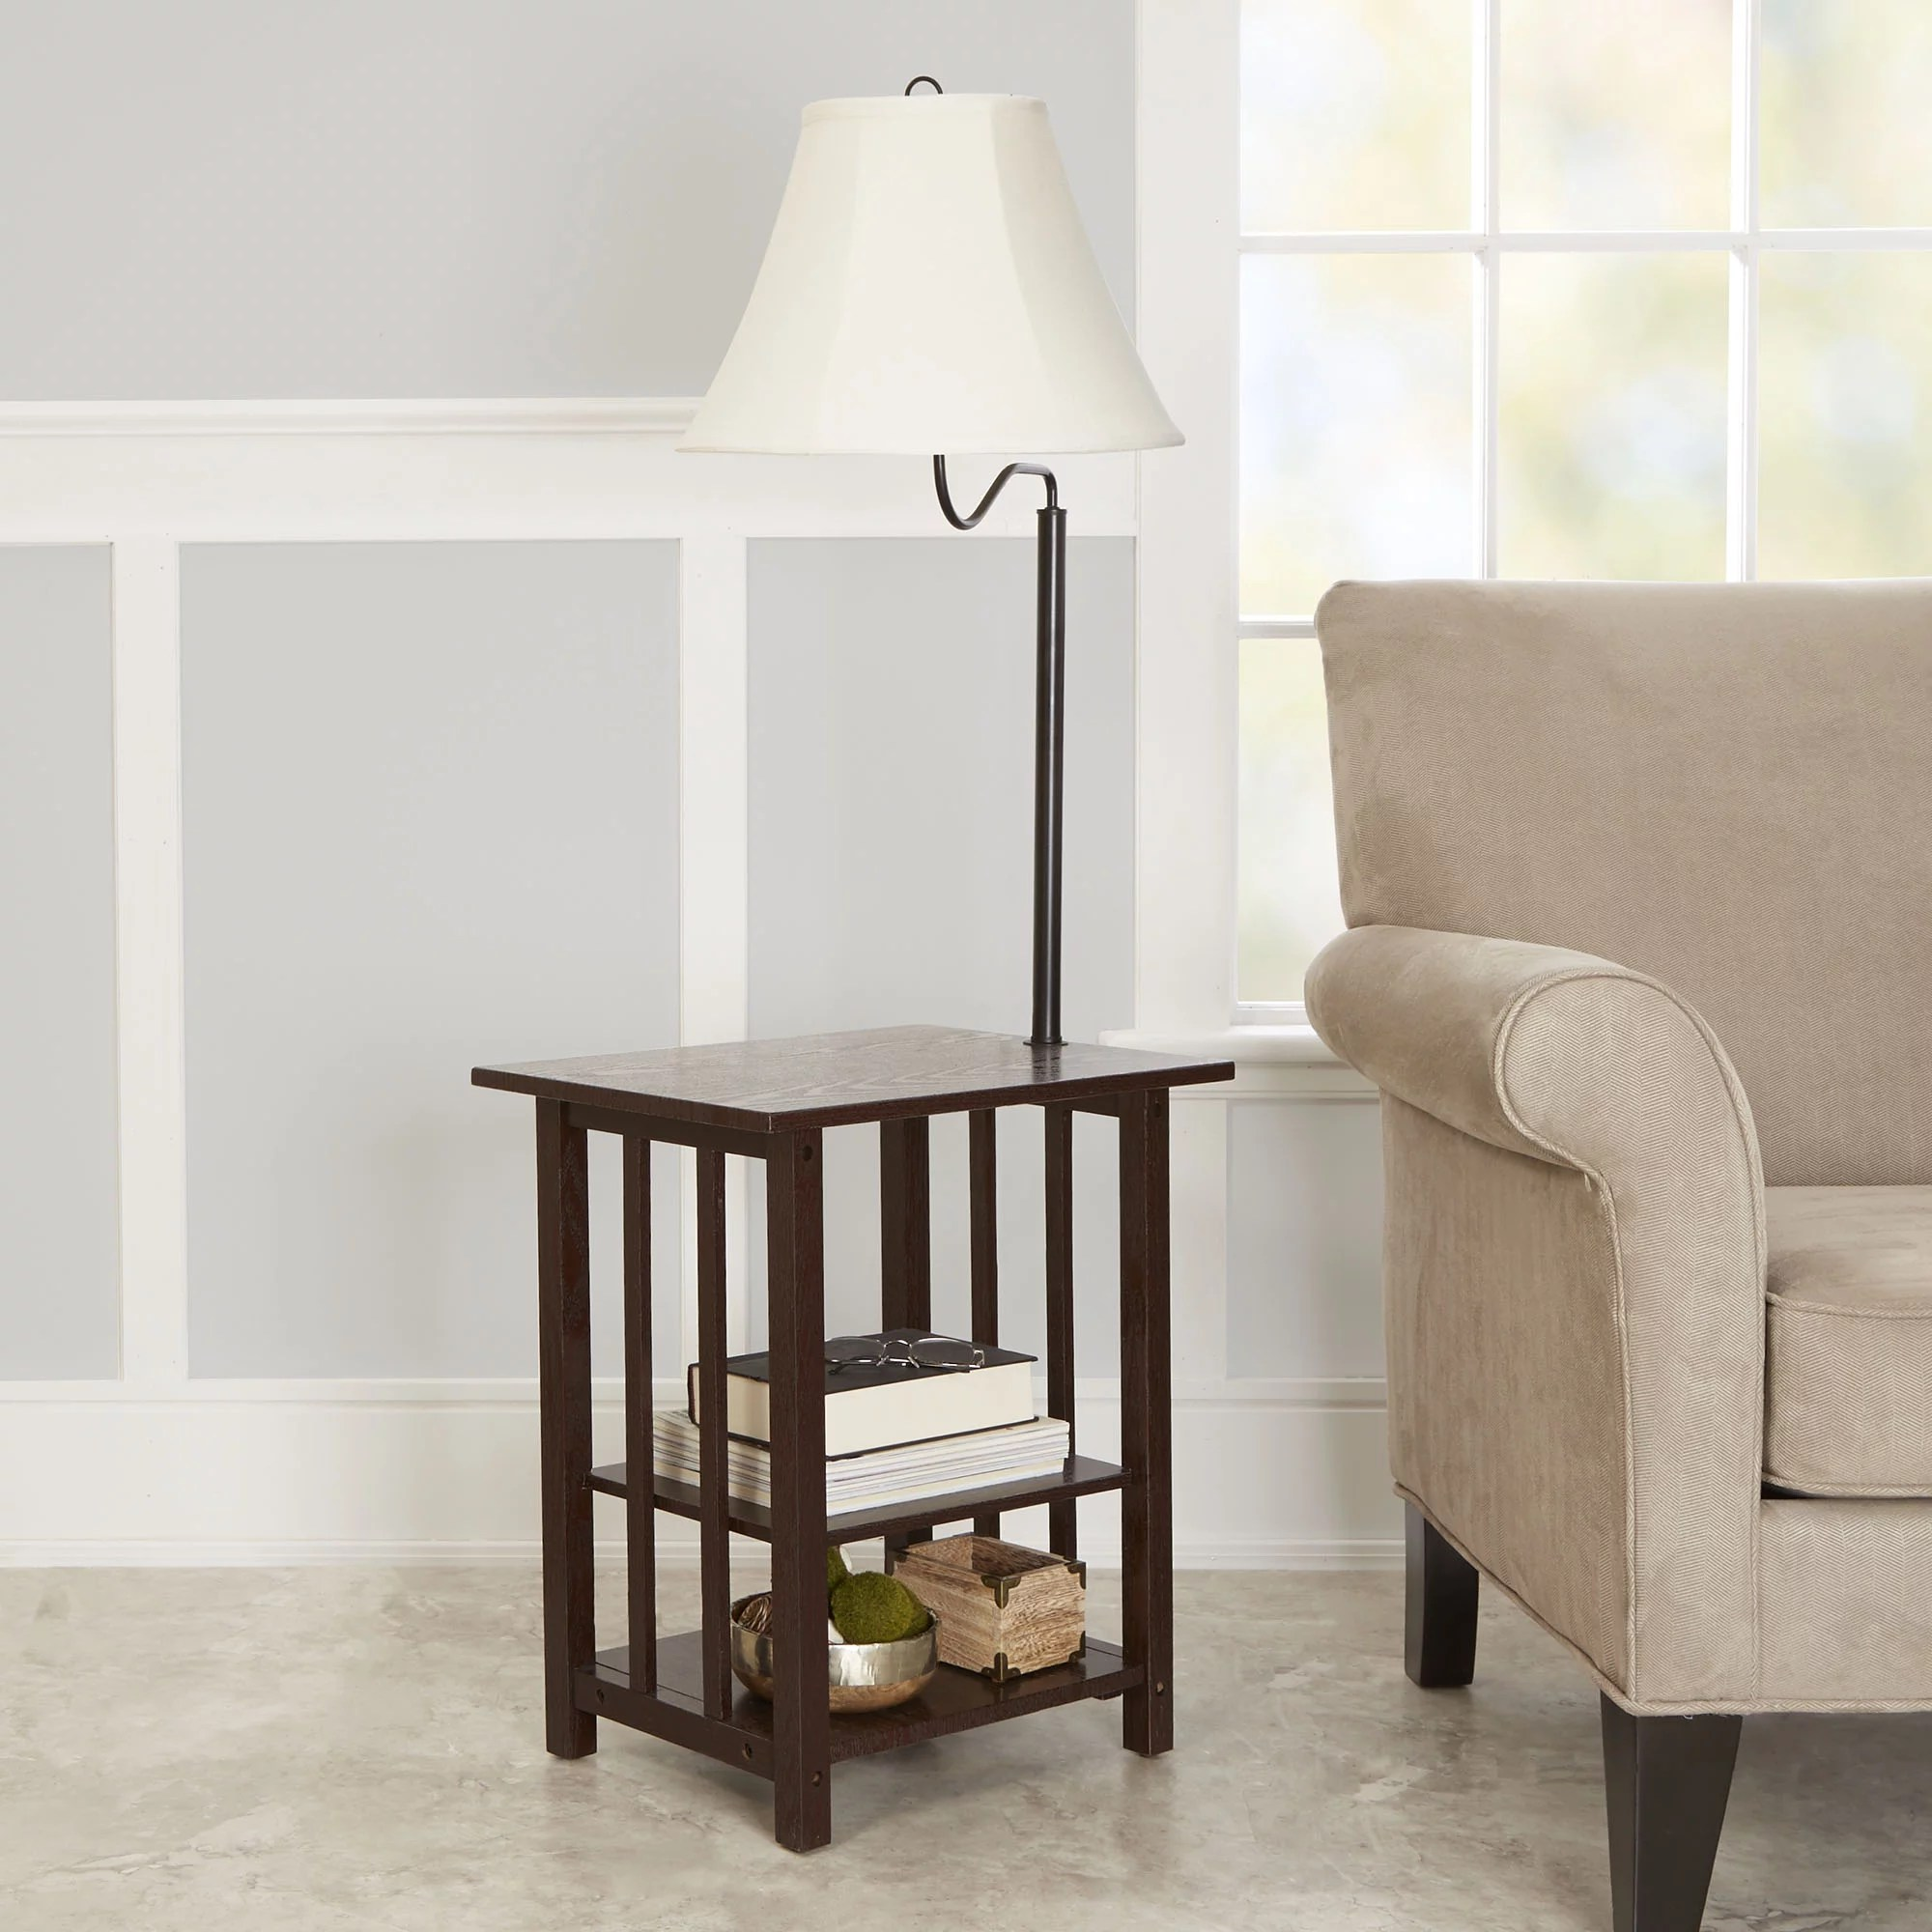 End Table For Living Room Better Homes Gardens 3 Rack End Table Floor Lamp Espresso Finish